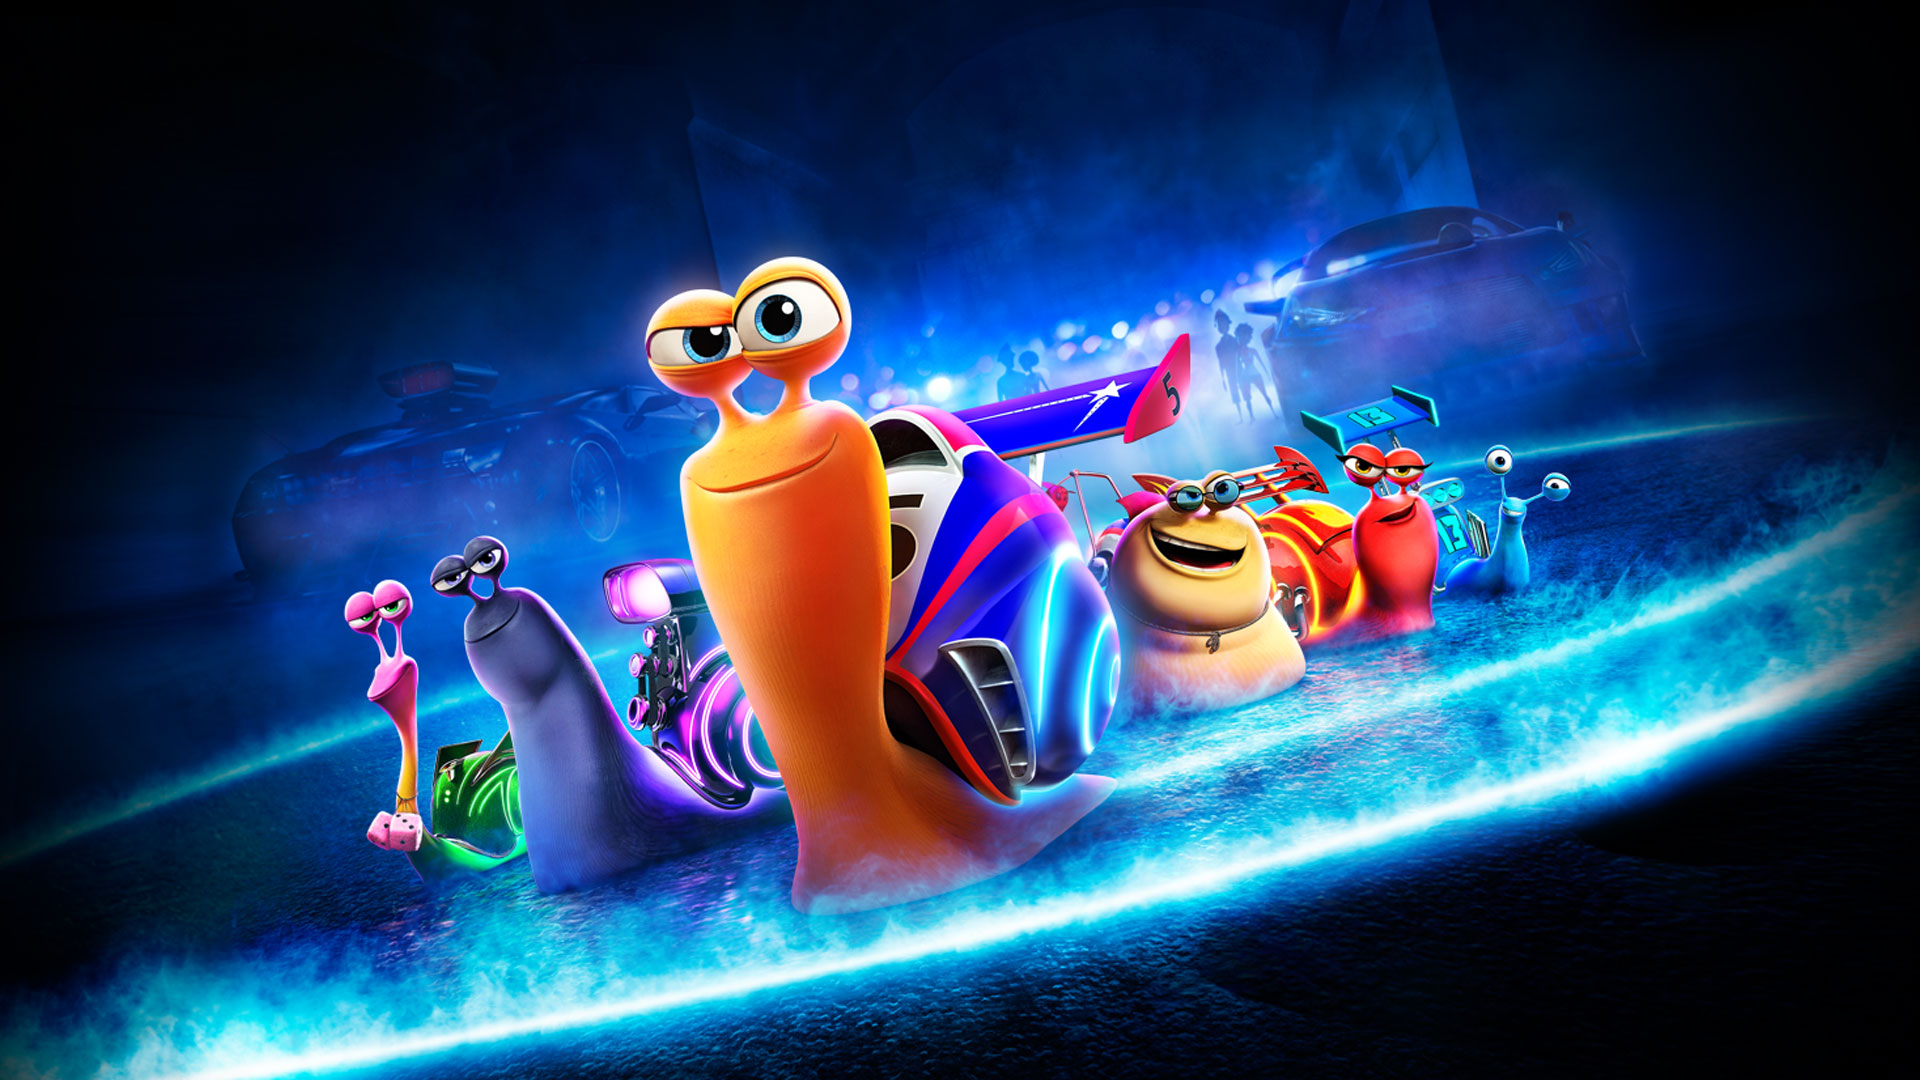 download turbo movie 20577 1920x1080 px high definition wallpaper.